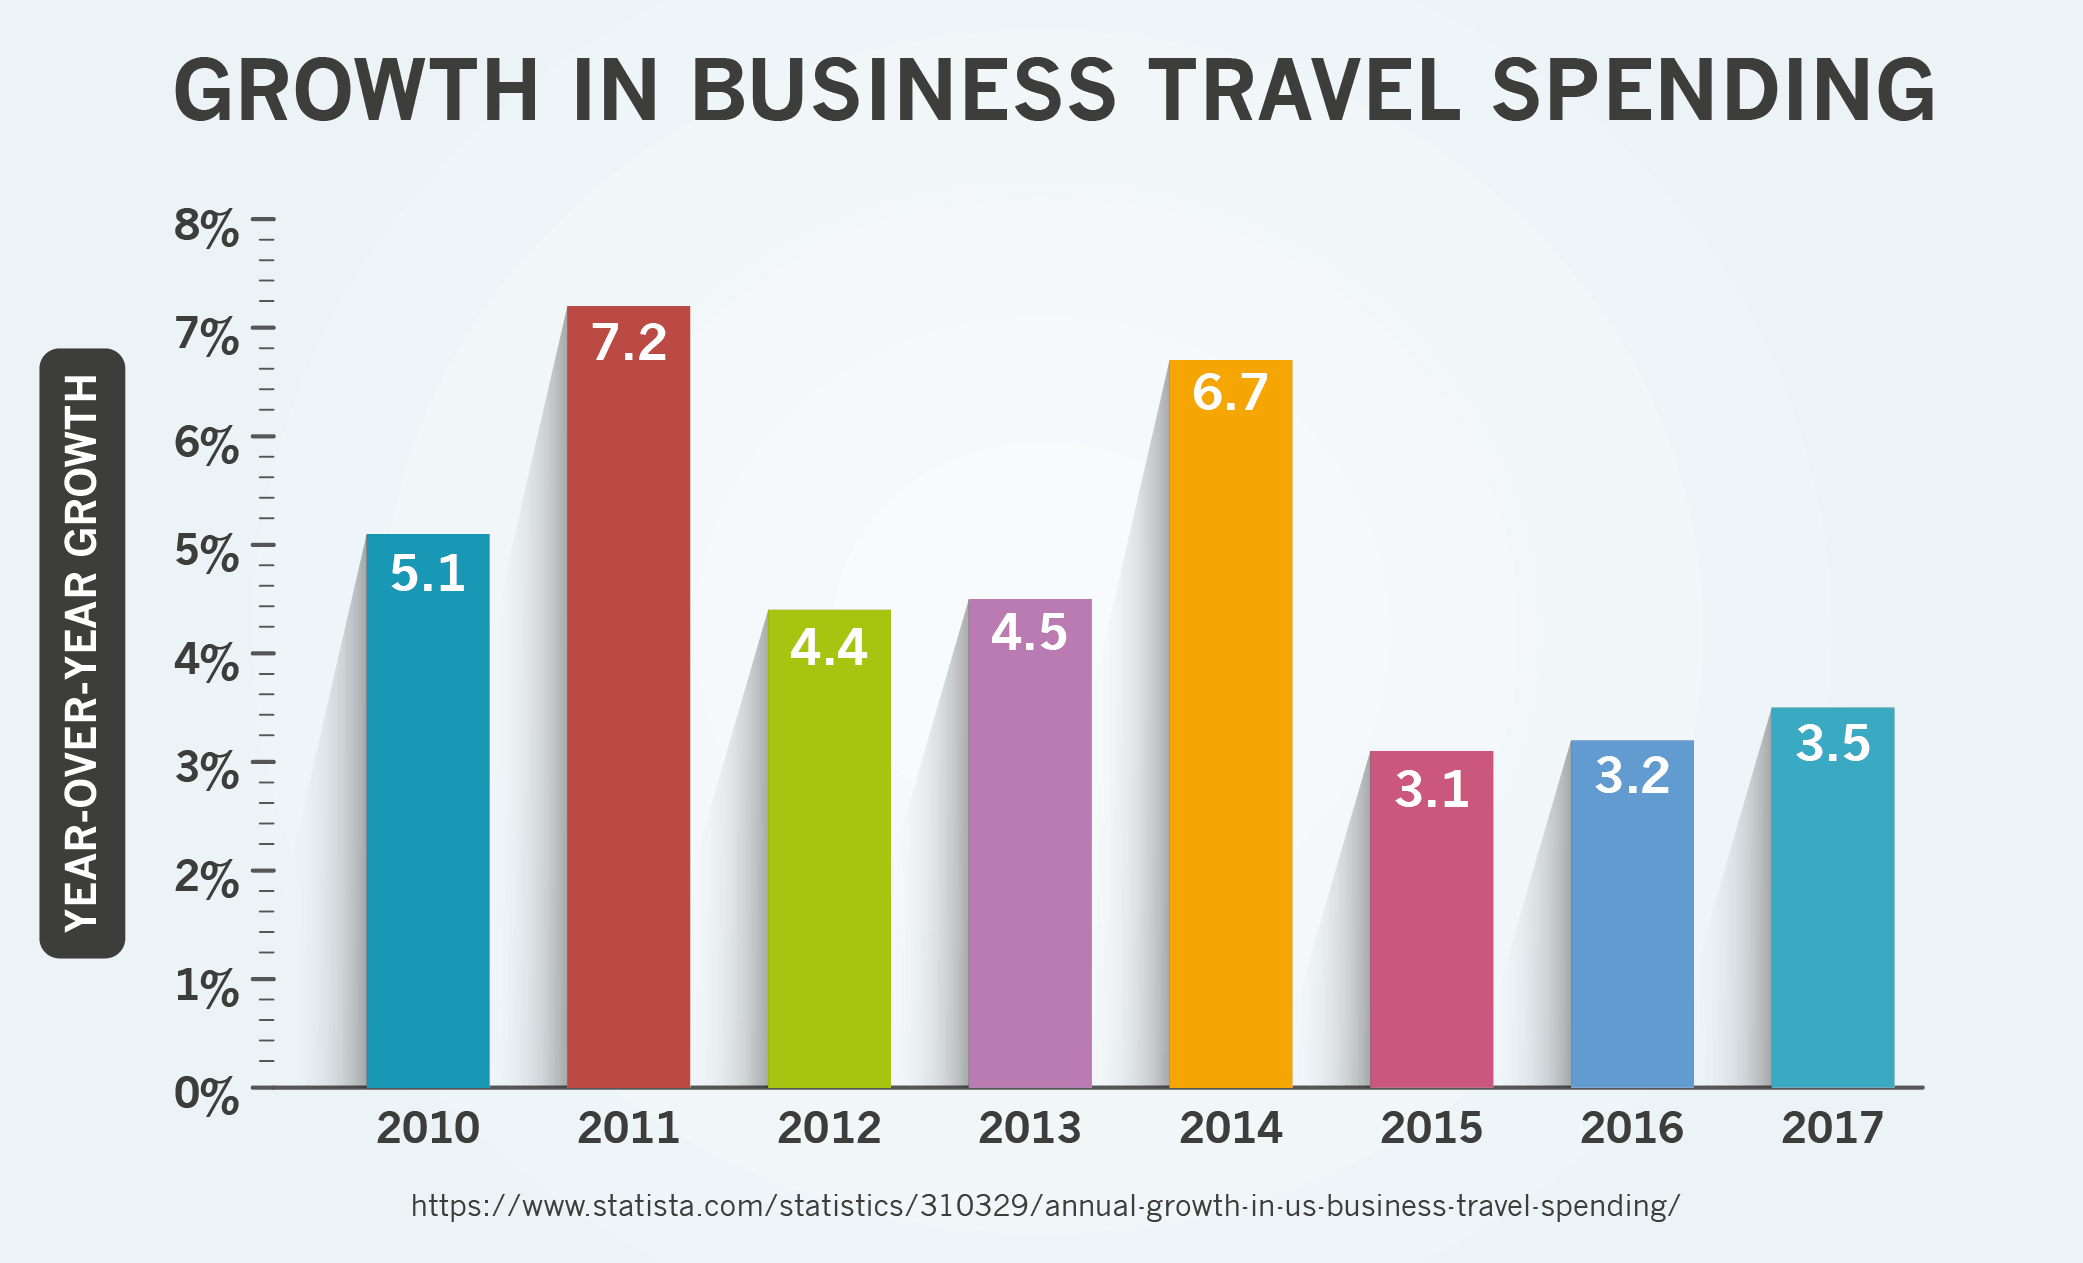 Growth in Business Travel Spending